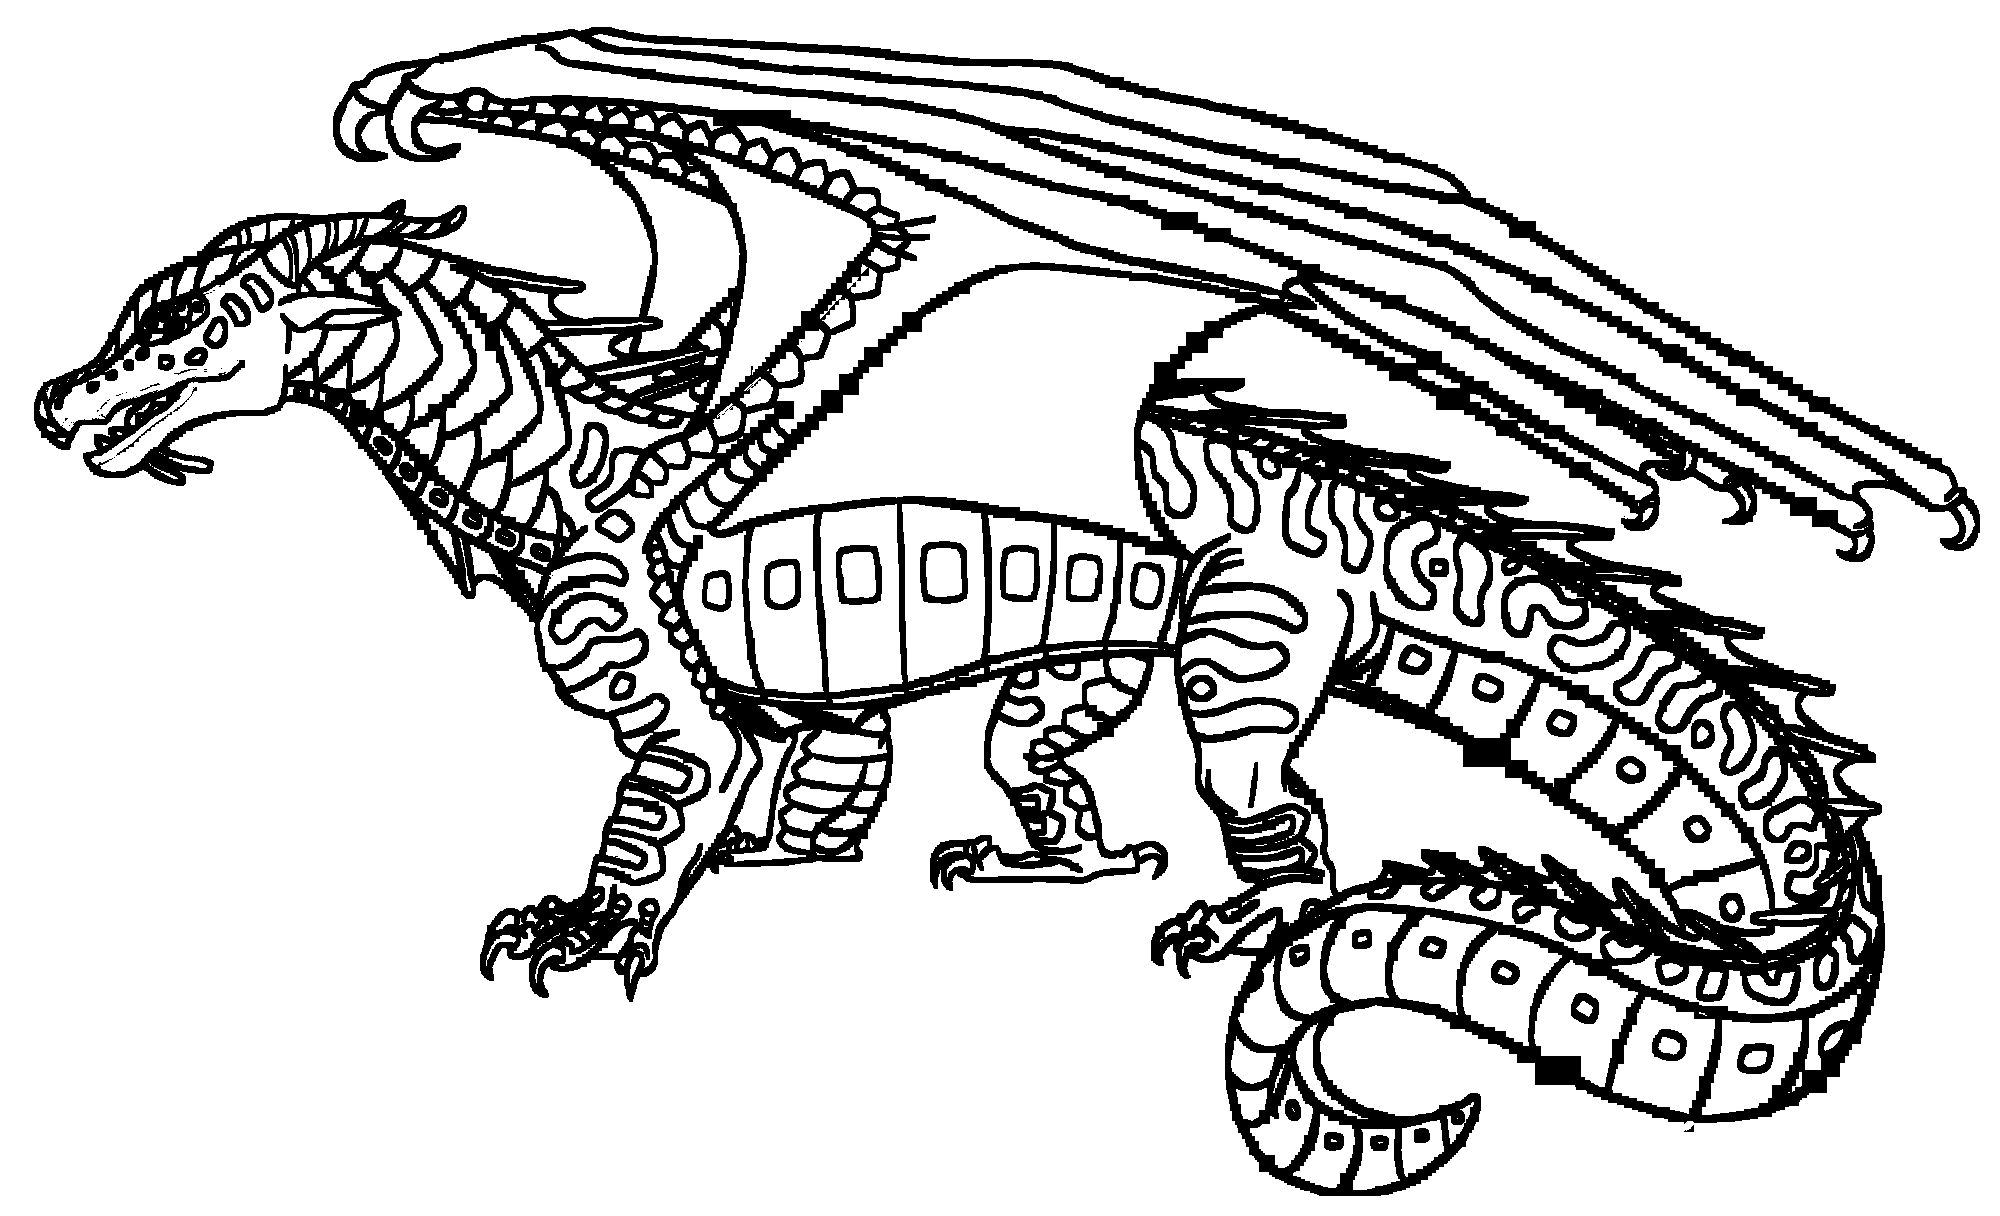 20 Wings Of Fire Coloring Pages Images | FREE COLORING PAGES